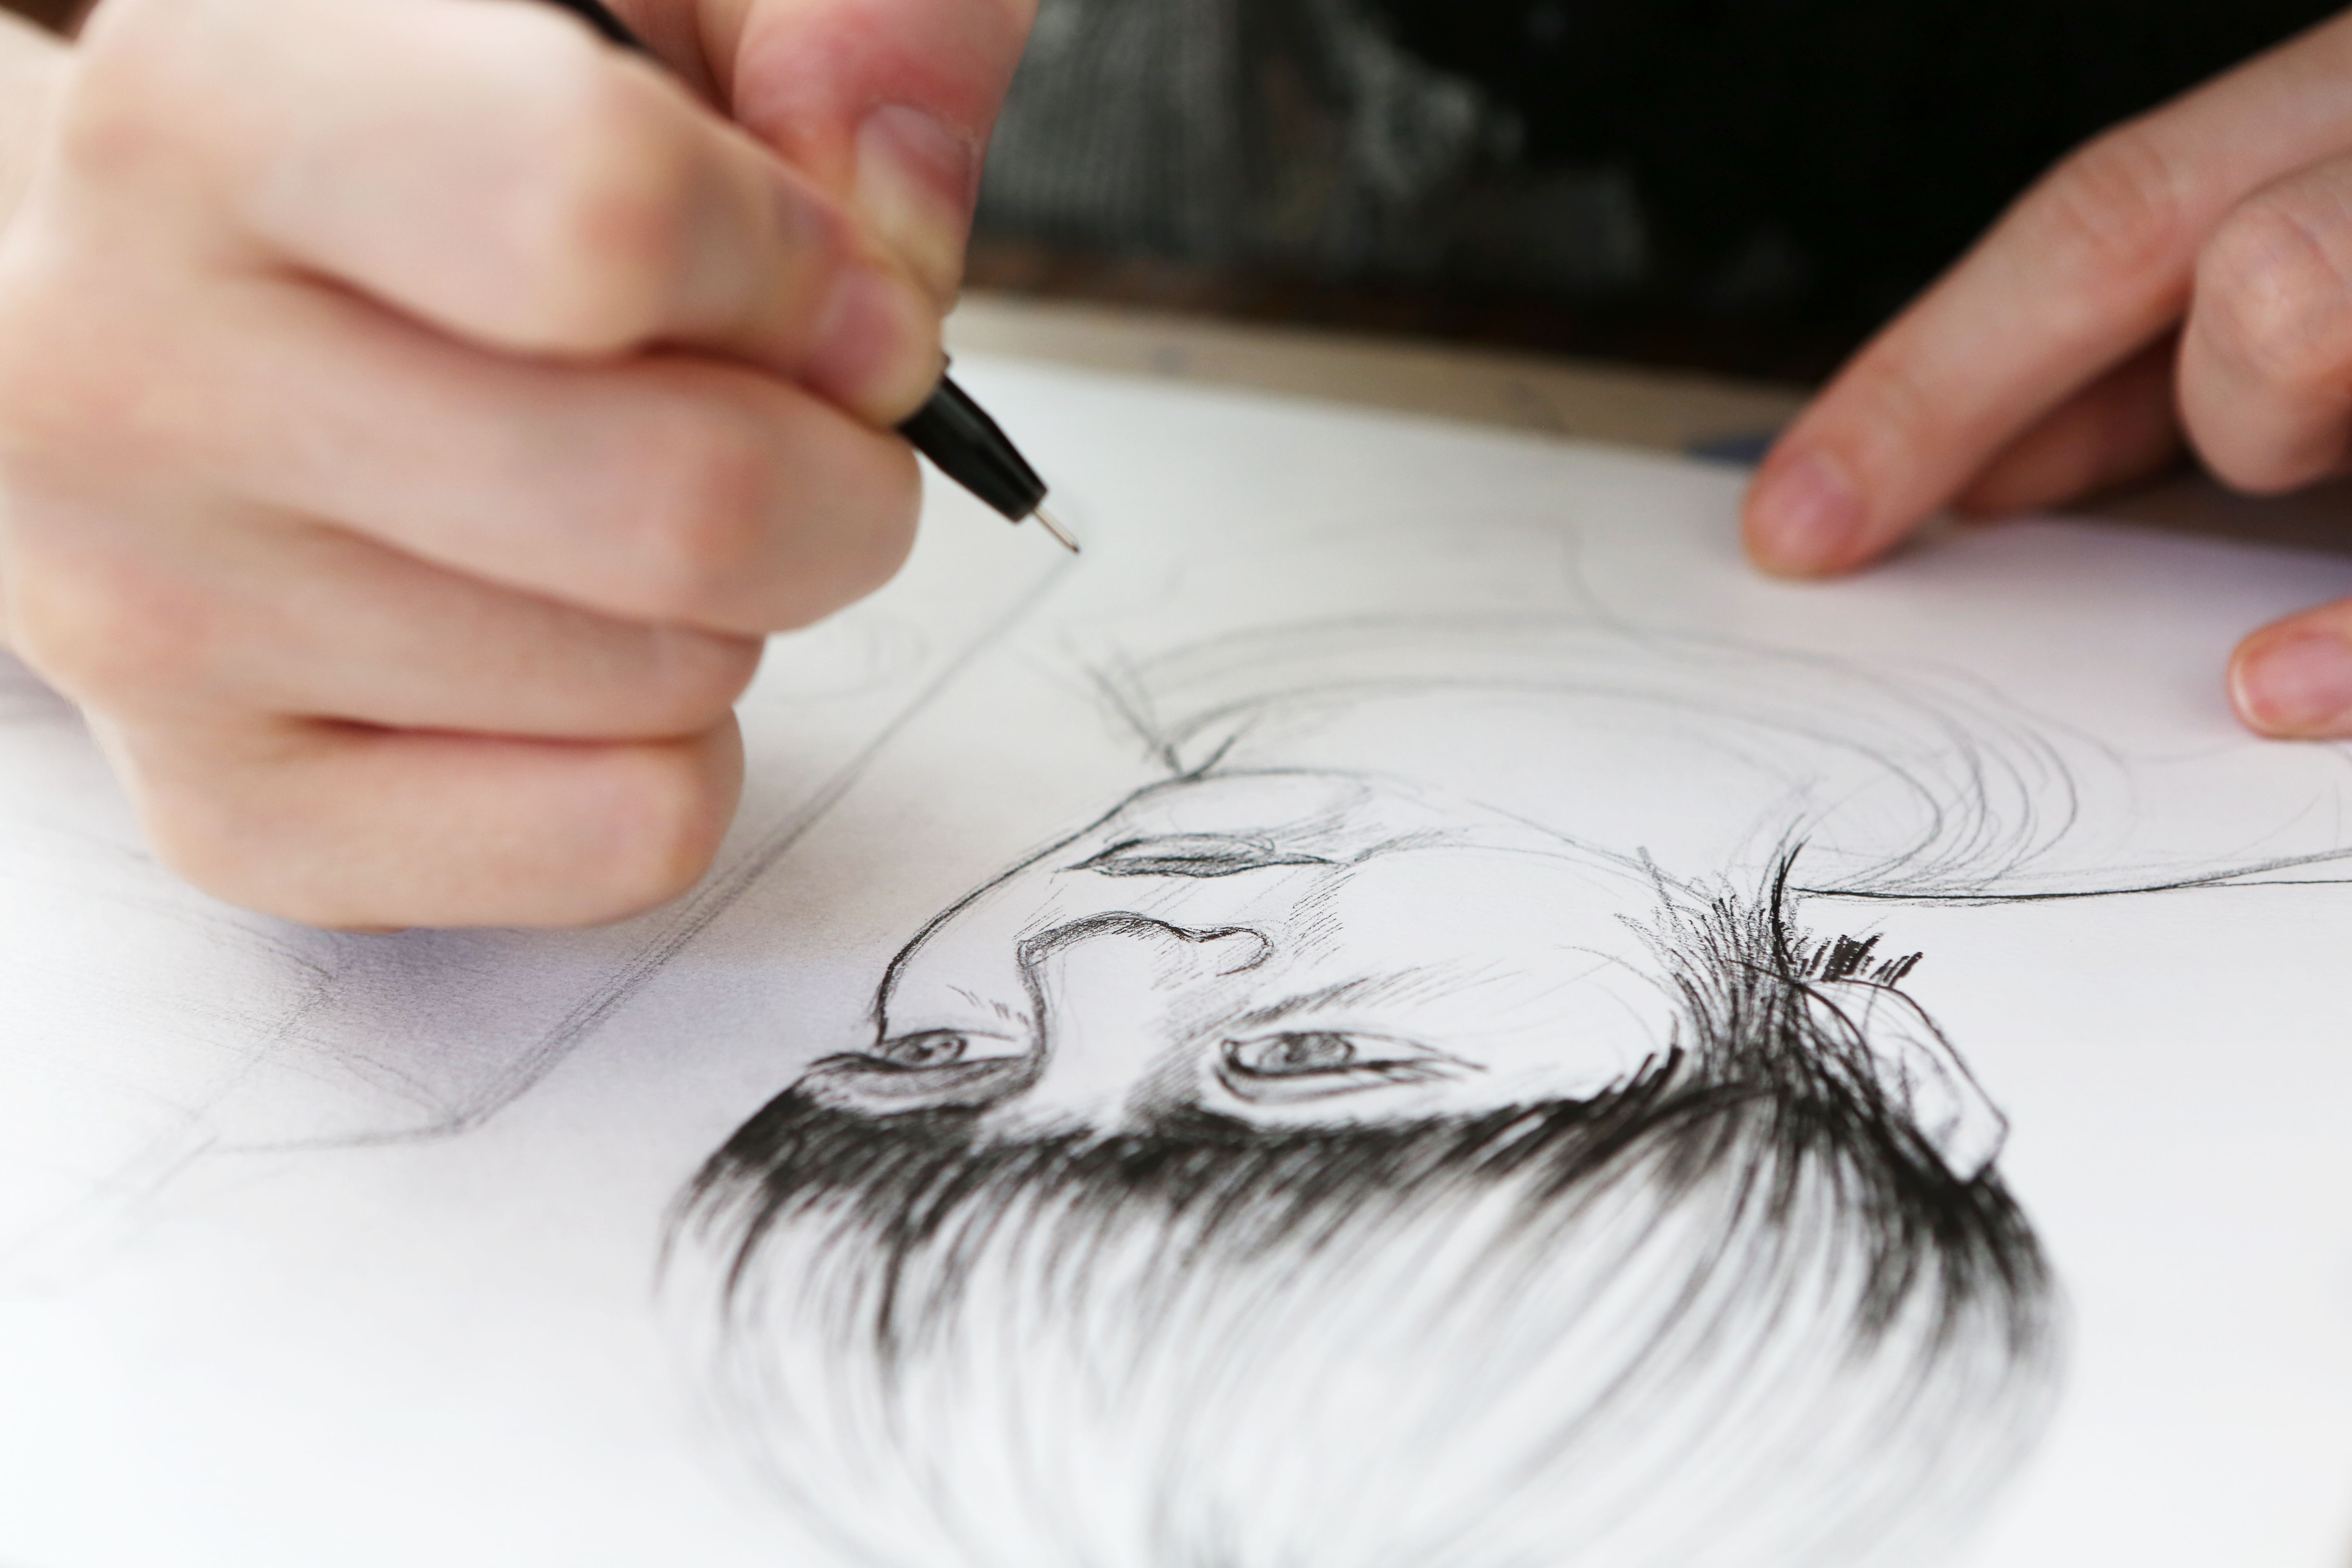 Sketching Exercise: How to Sketch People's Faces